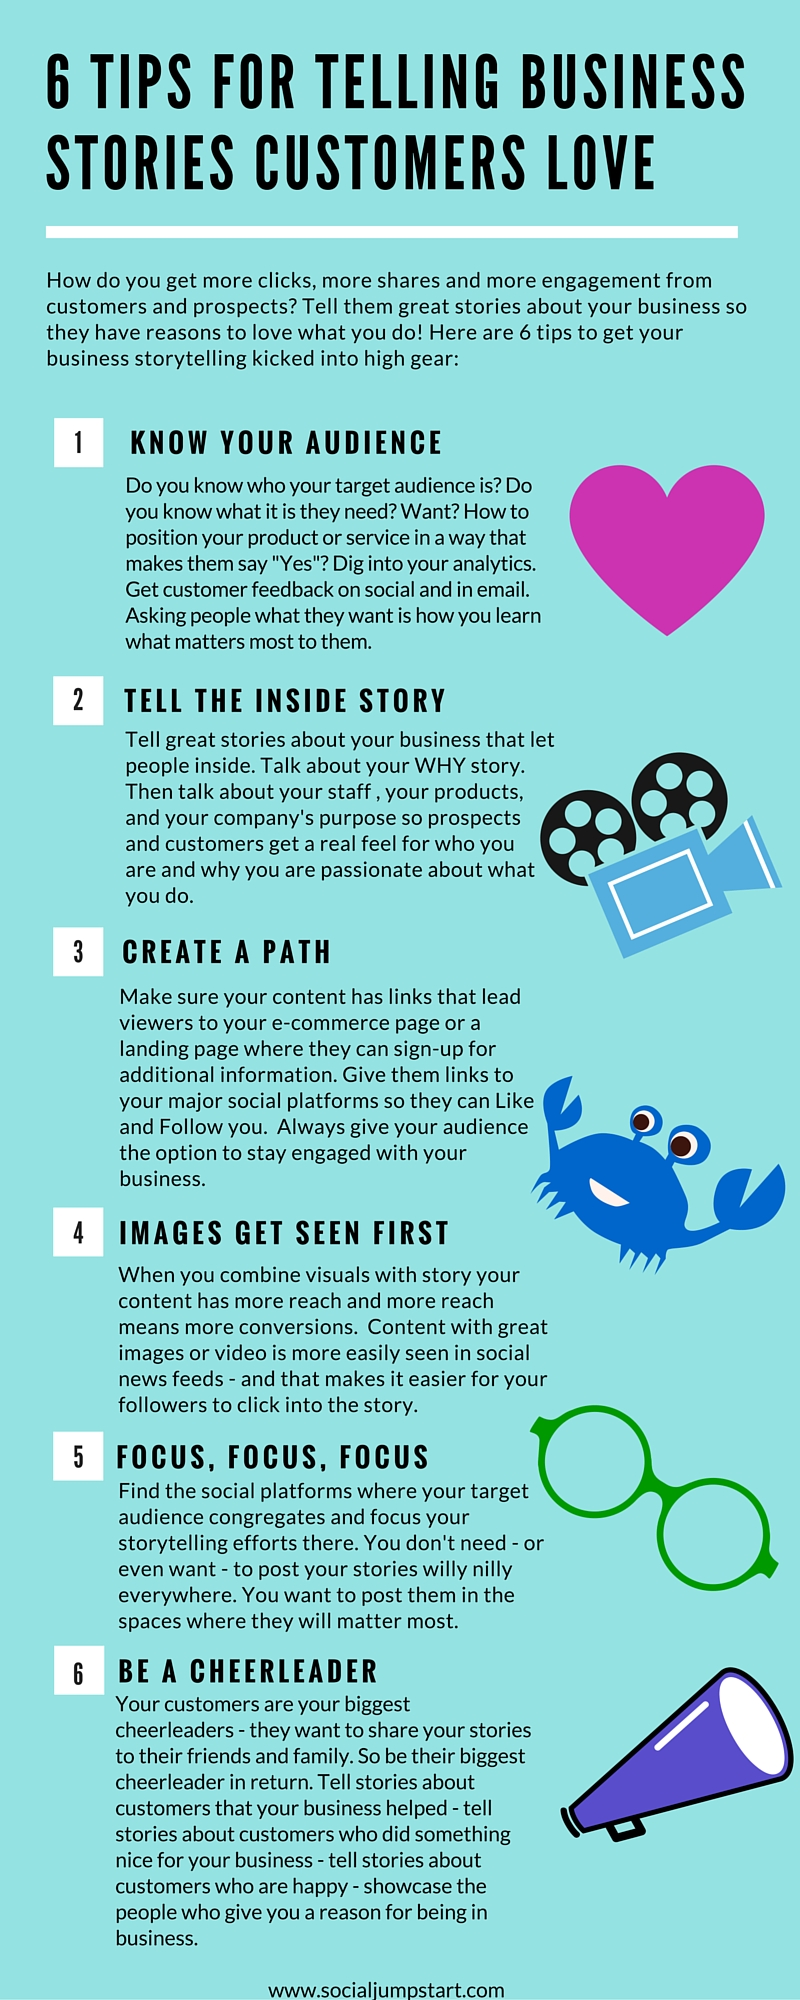 6 Tips for Storytelling (1)